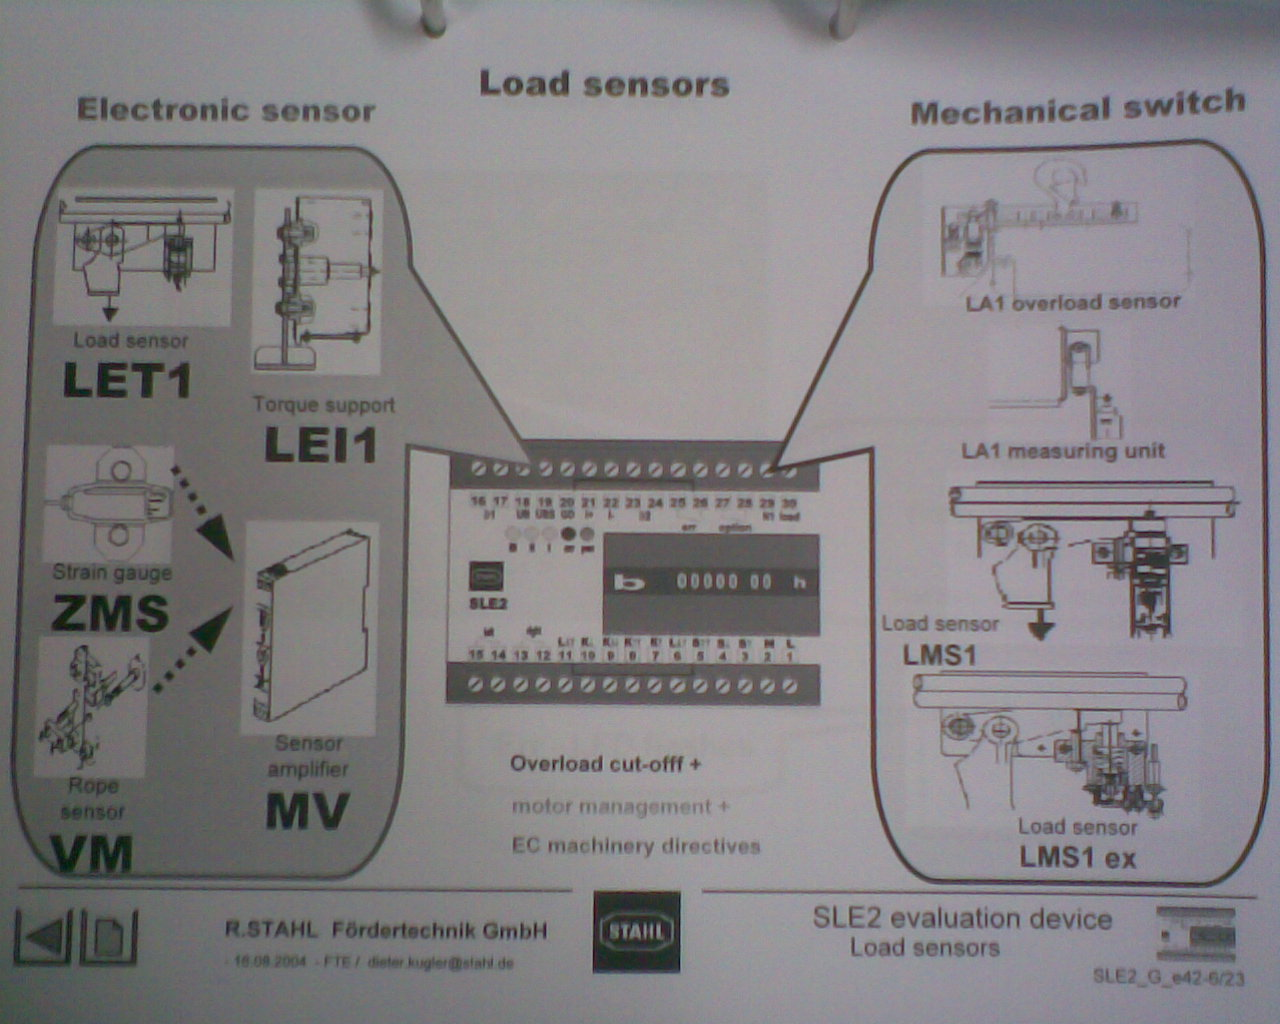 stahl crane wire diagram wiring librarysle load sensor using combination of electrical sensor and mechanical switch